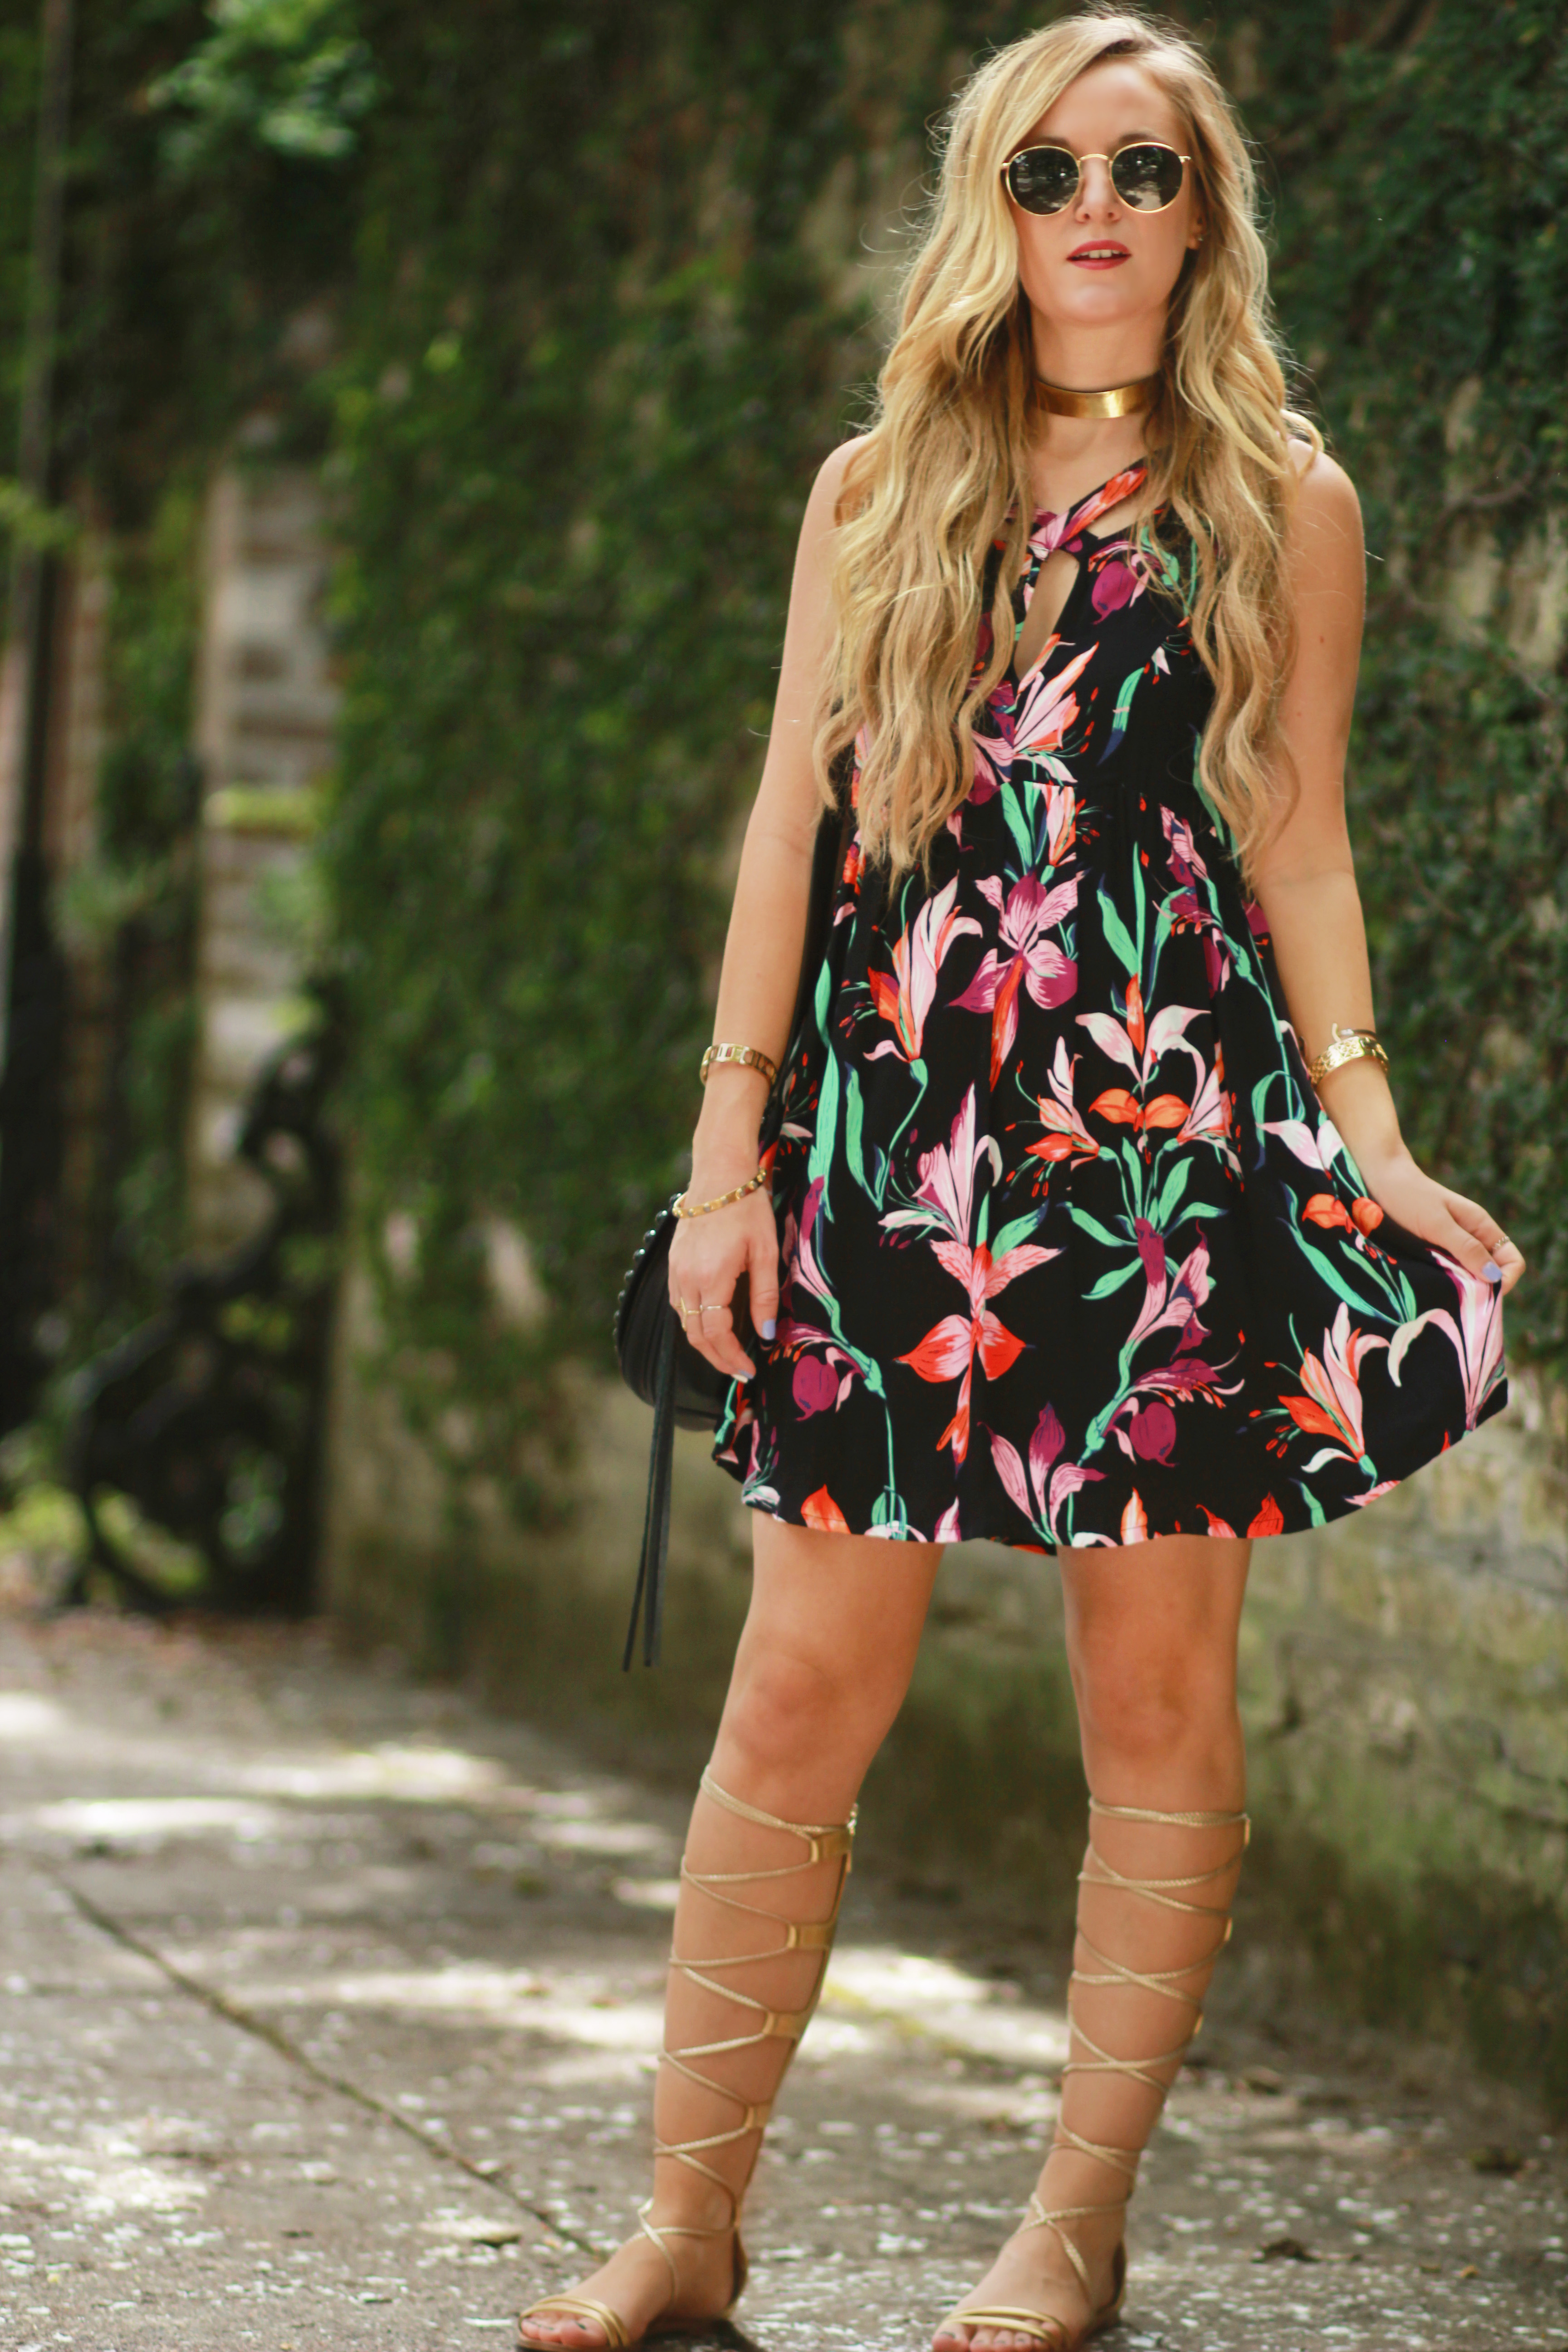 c06e48dcbdd0 Orlando Florida fashion blog styles Mink Pink floral summer dress with gold  gladiator sandals